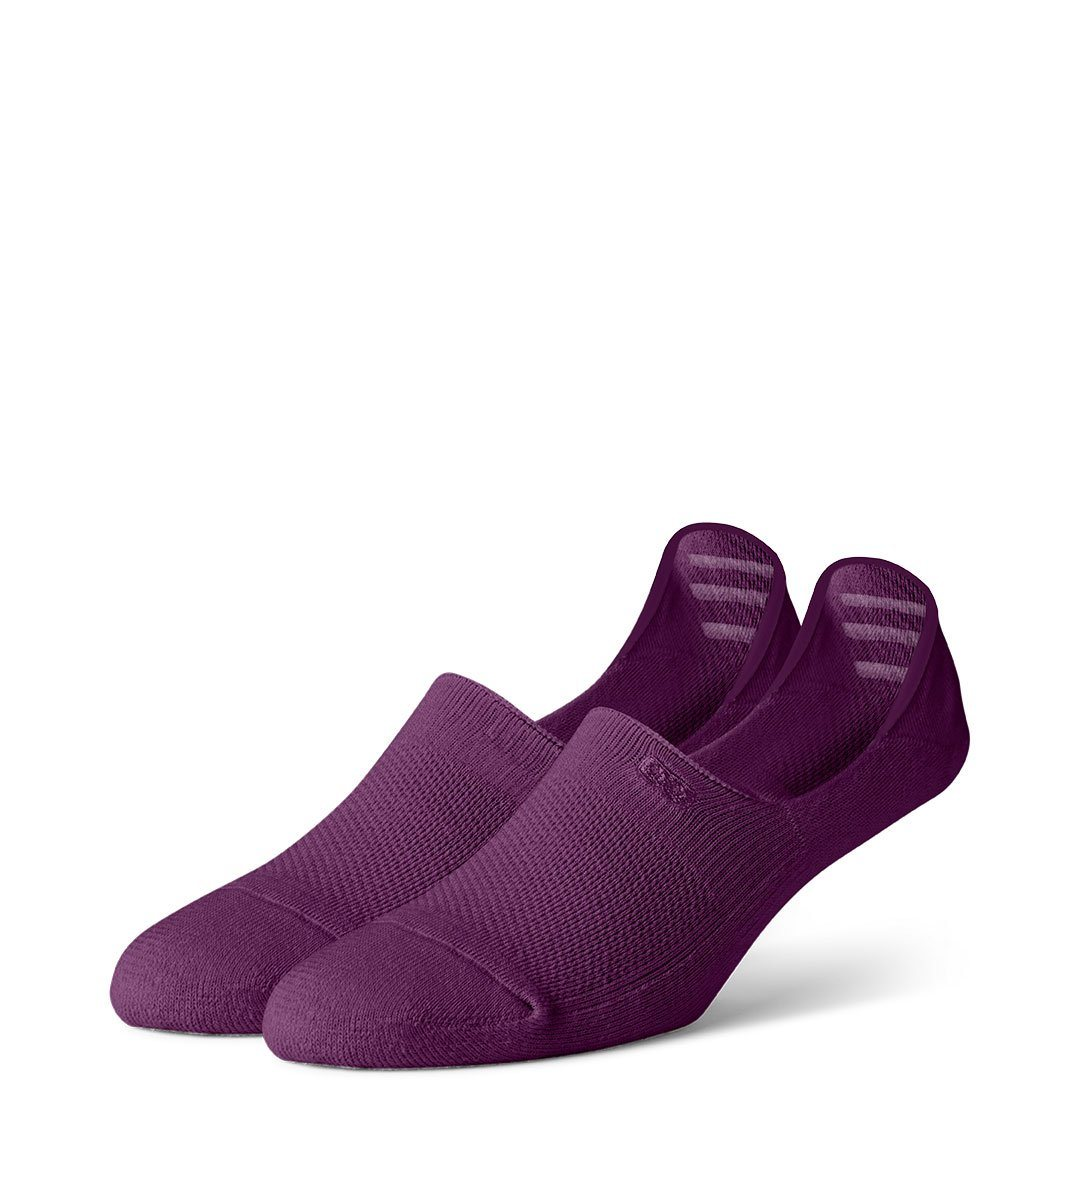 Purple Men's Prism Cushion No Show Socks